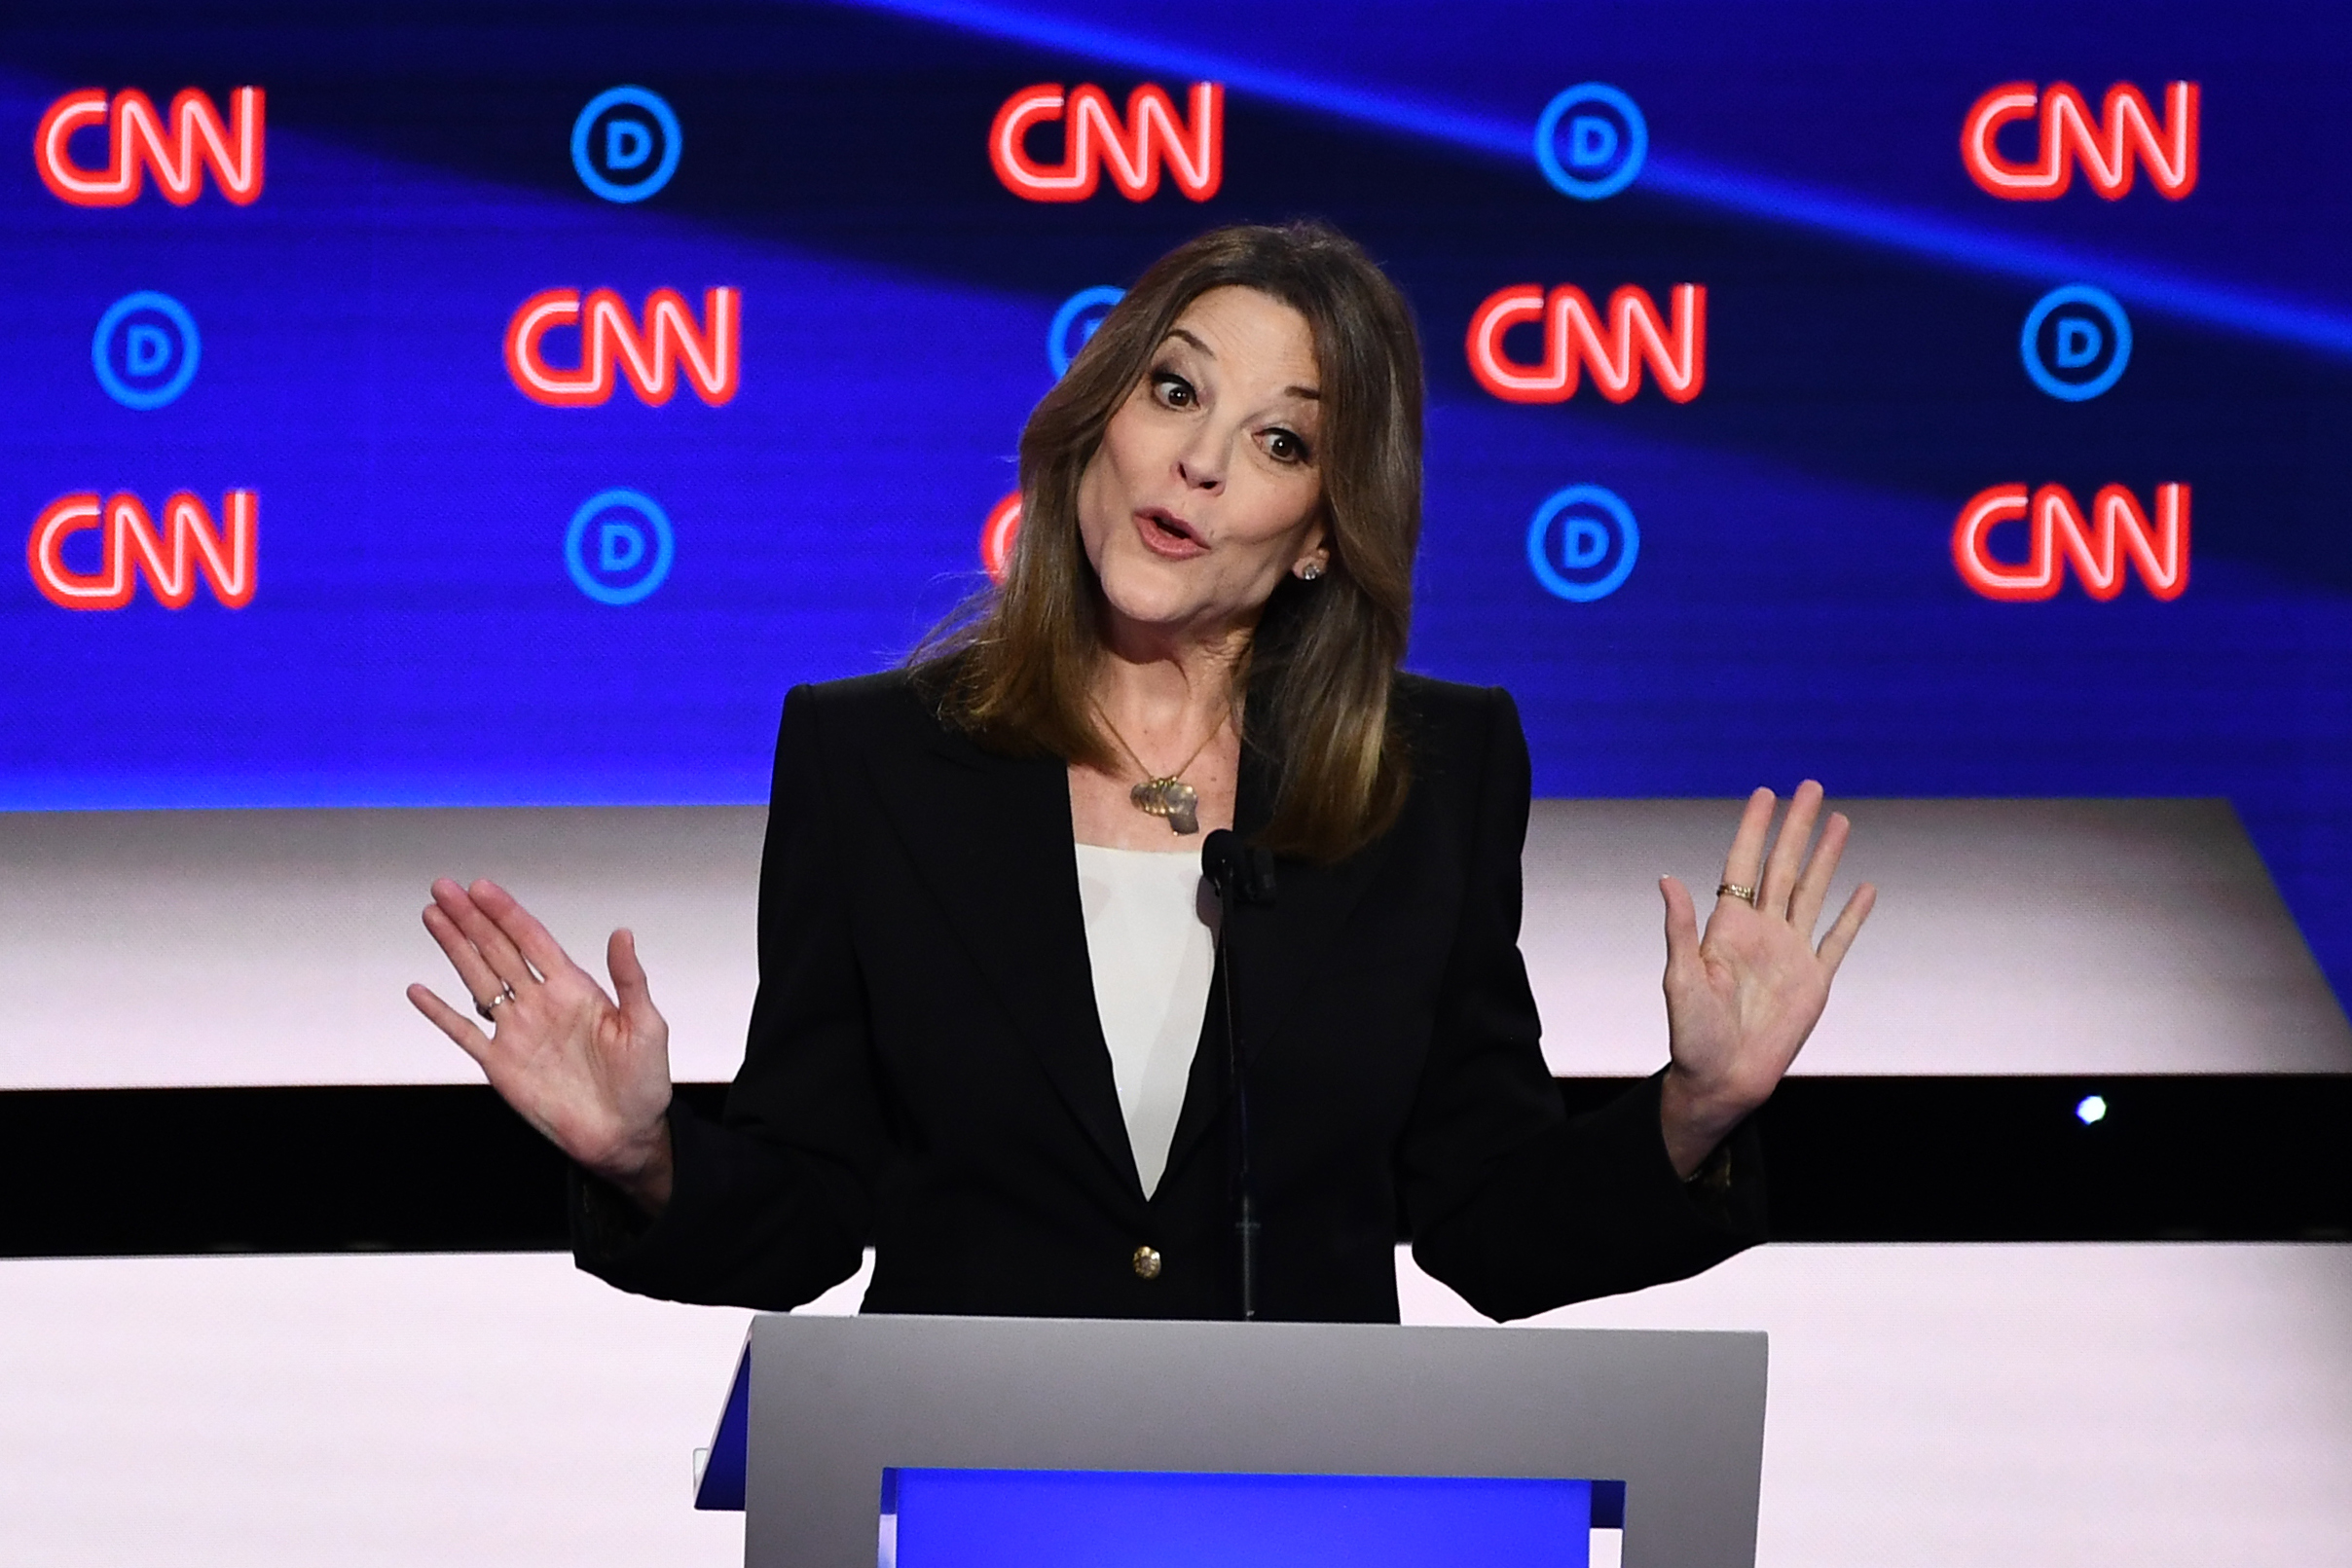 Democratic presidential hopeful US author and writer Marianne Williamson speaks during the first round of the second Democratic primary debate of the 2020 presidential campaign season at the Fox Theatre in Detroit, Michigan on July 30, 2019.